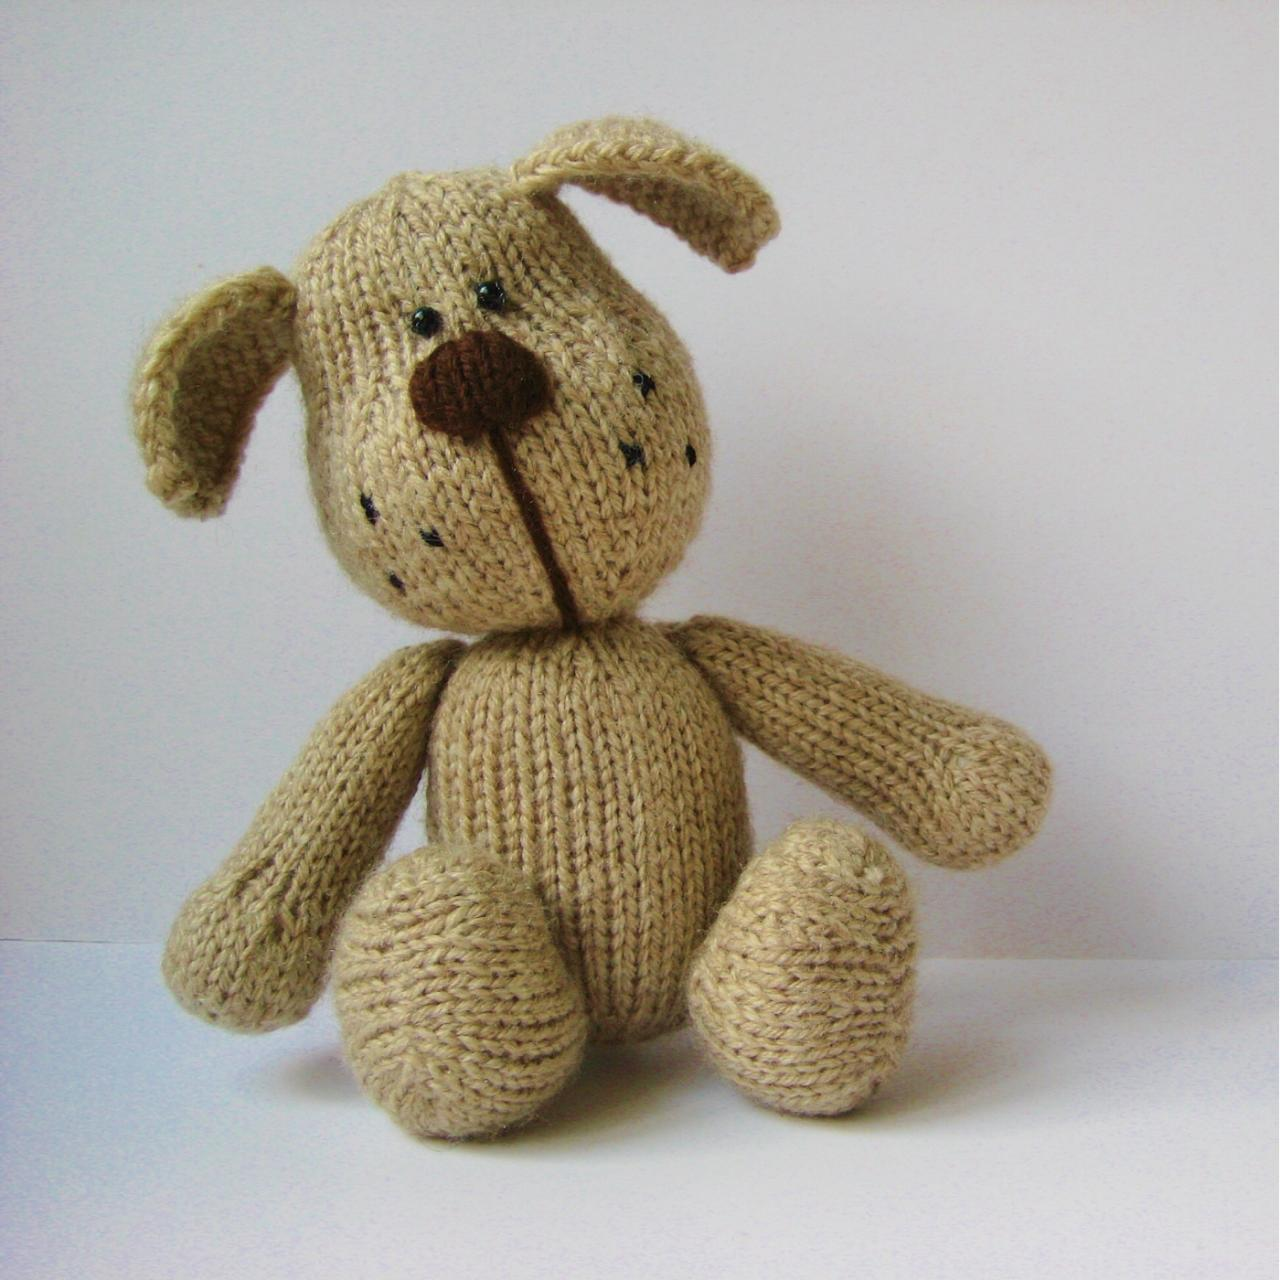 Knitting Pattern For Puppy Dogs : Bernie The Dog Toy Knitting Pattern on Luulla